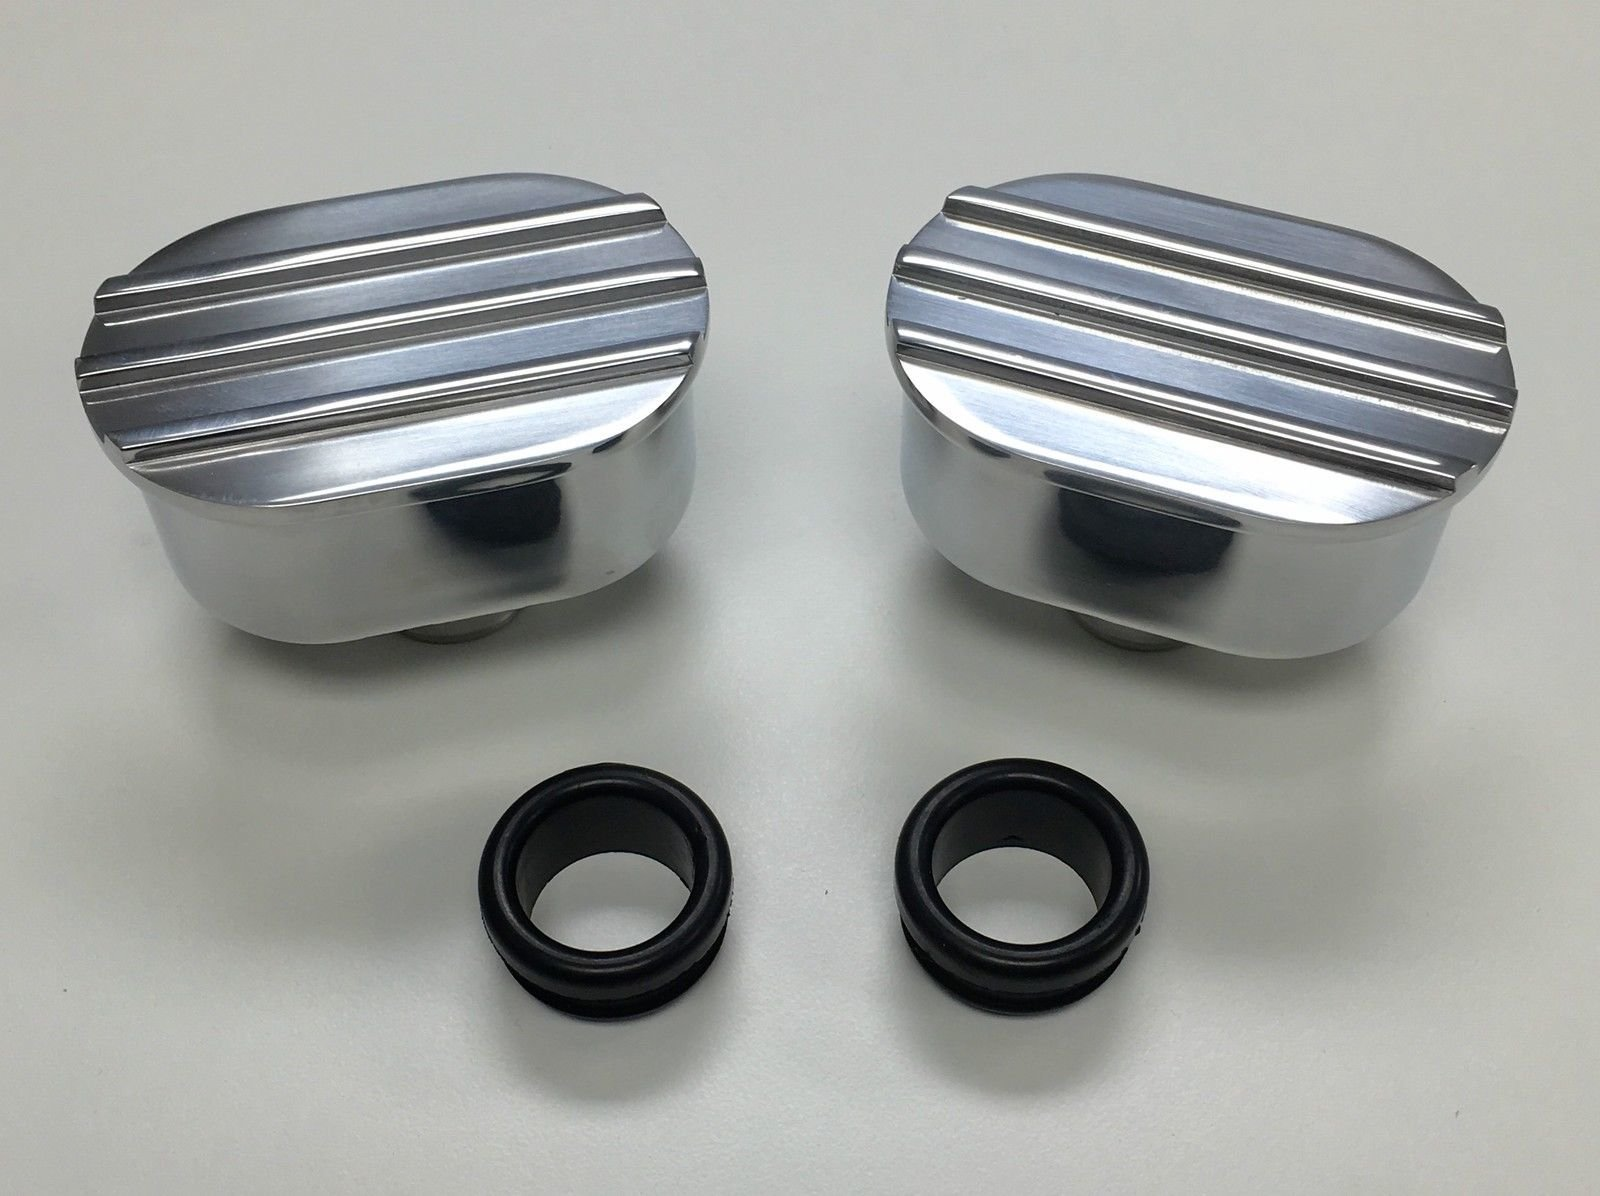 Hot Rod Oval Finned Polished Valve Cover Breather Kit W/ Grommet SBC BBC V8